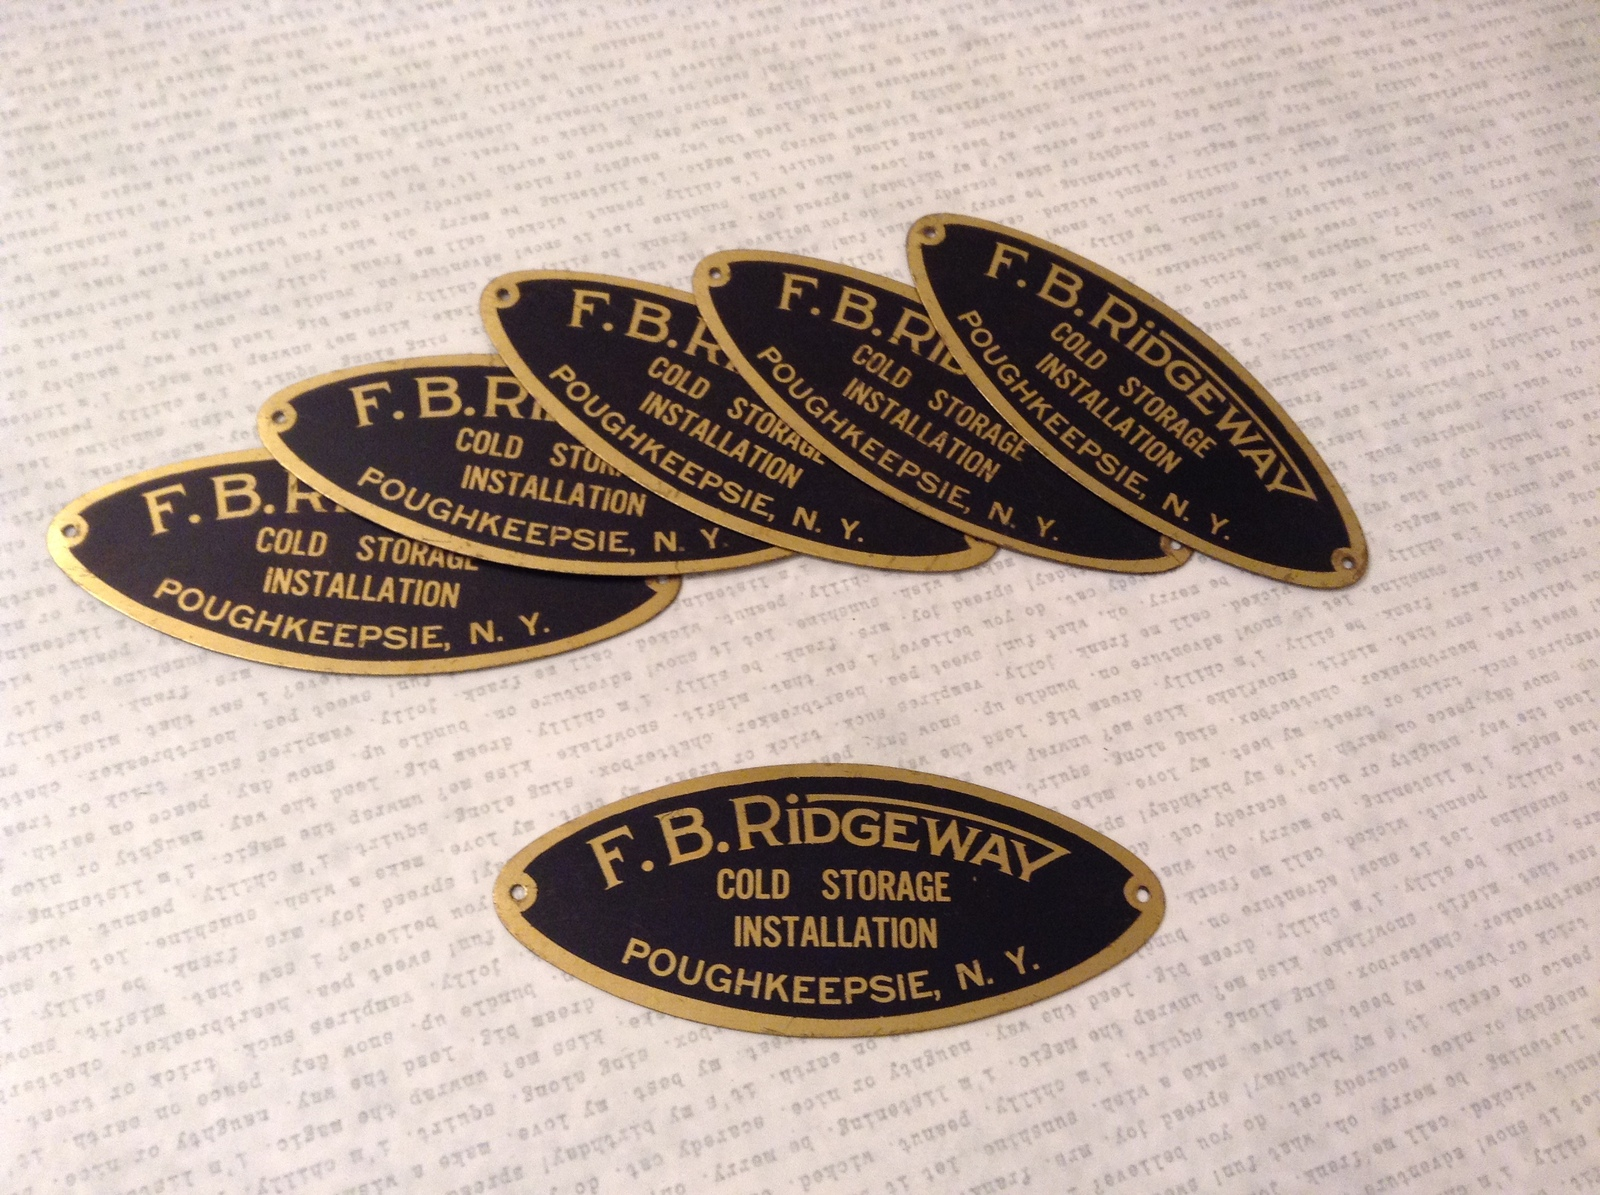 F.B Ridgeway Poughkeepsie NY Cold Storage Installation Metal Plaque, set of 6